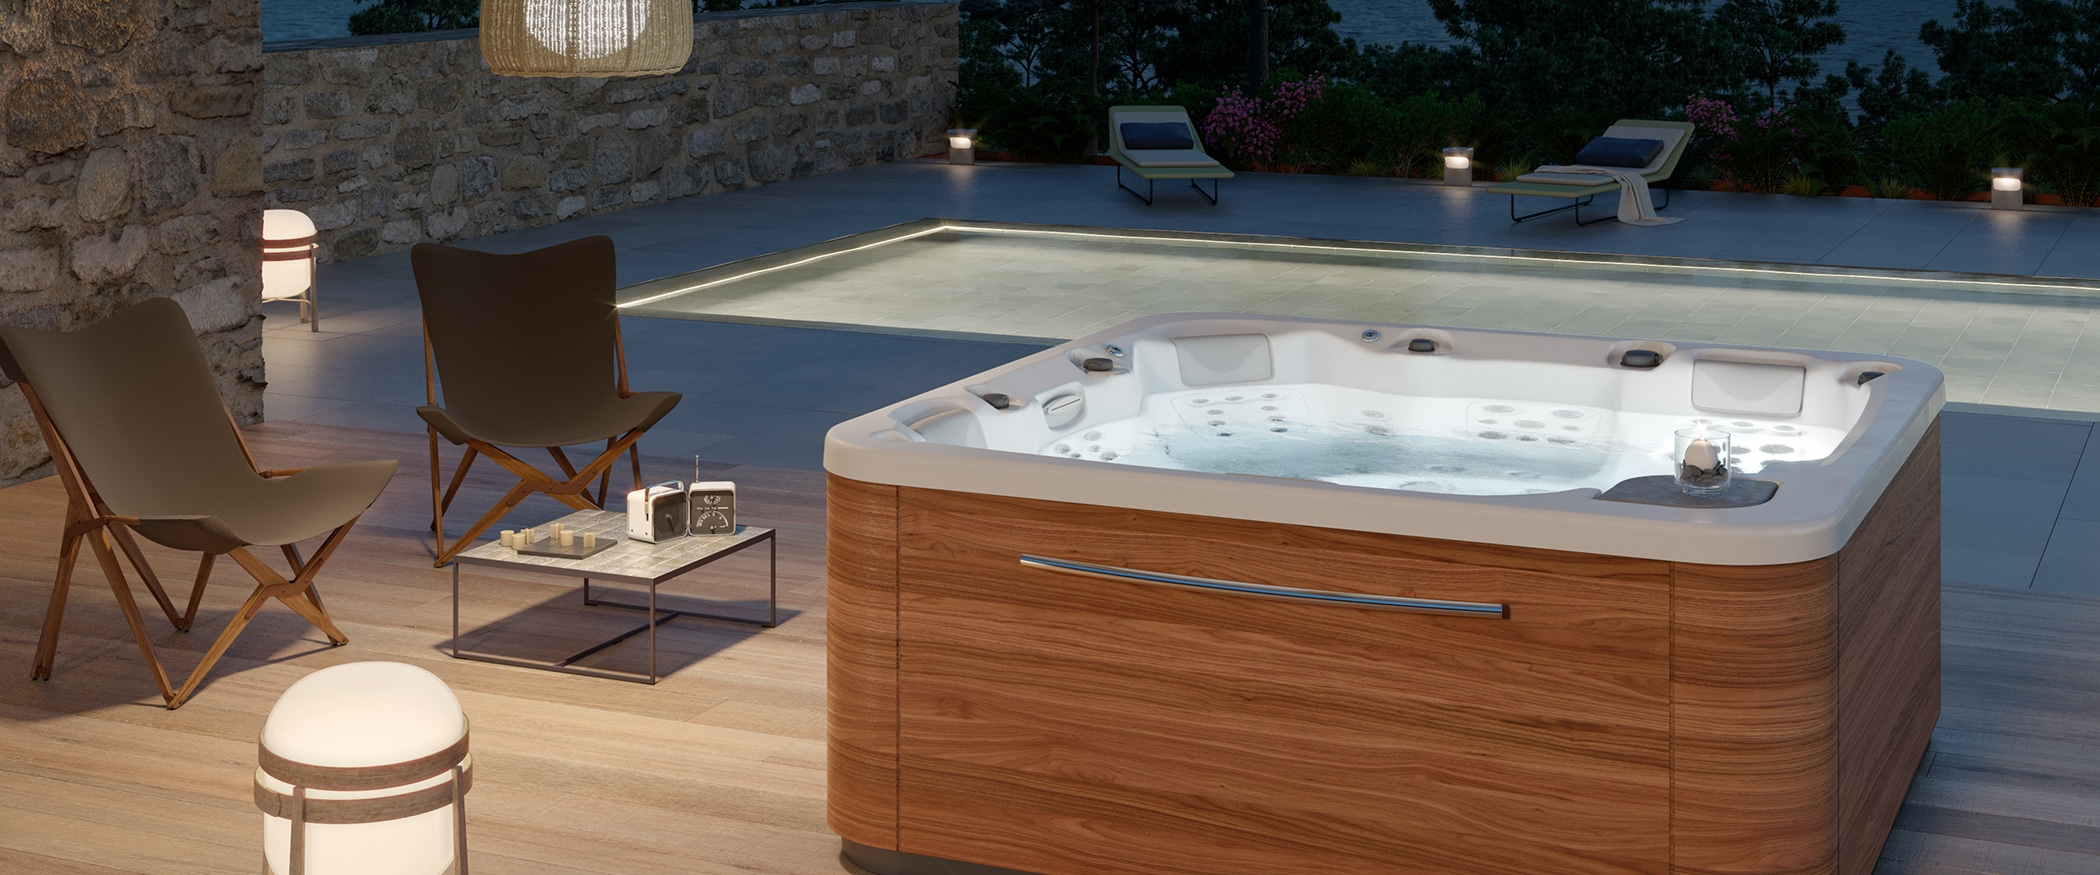 Spa jacuzzi Essence 5 plazas lateral Aquavia Spa